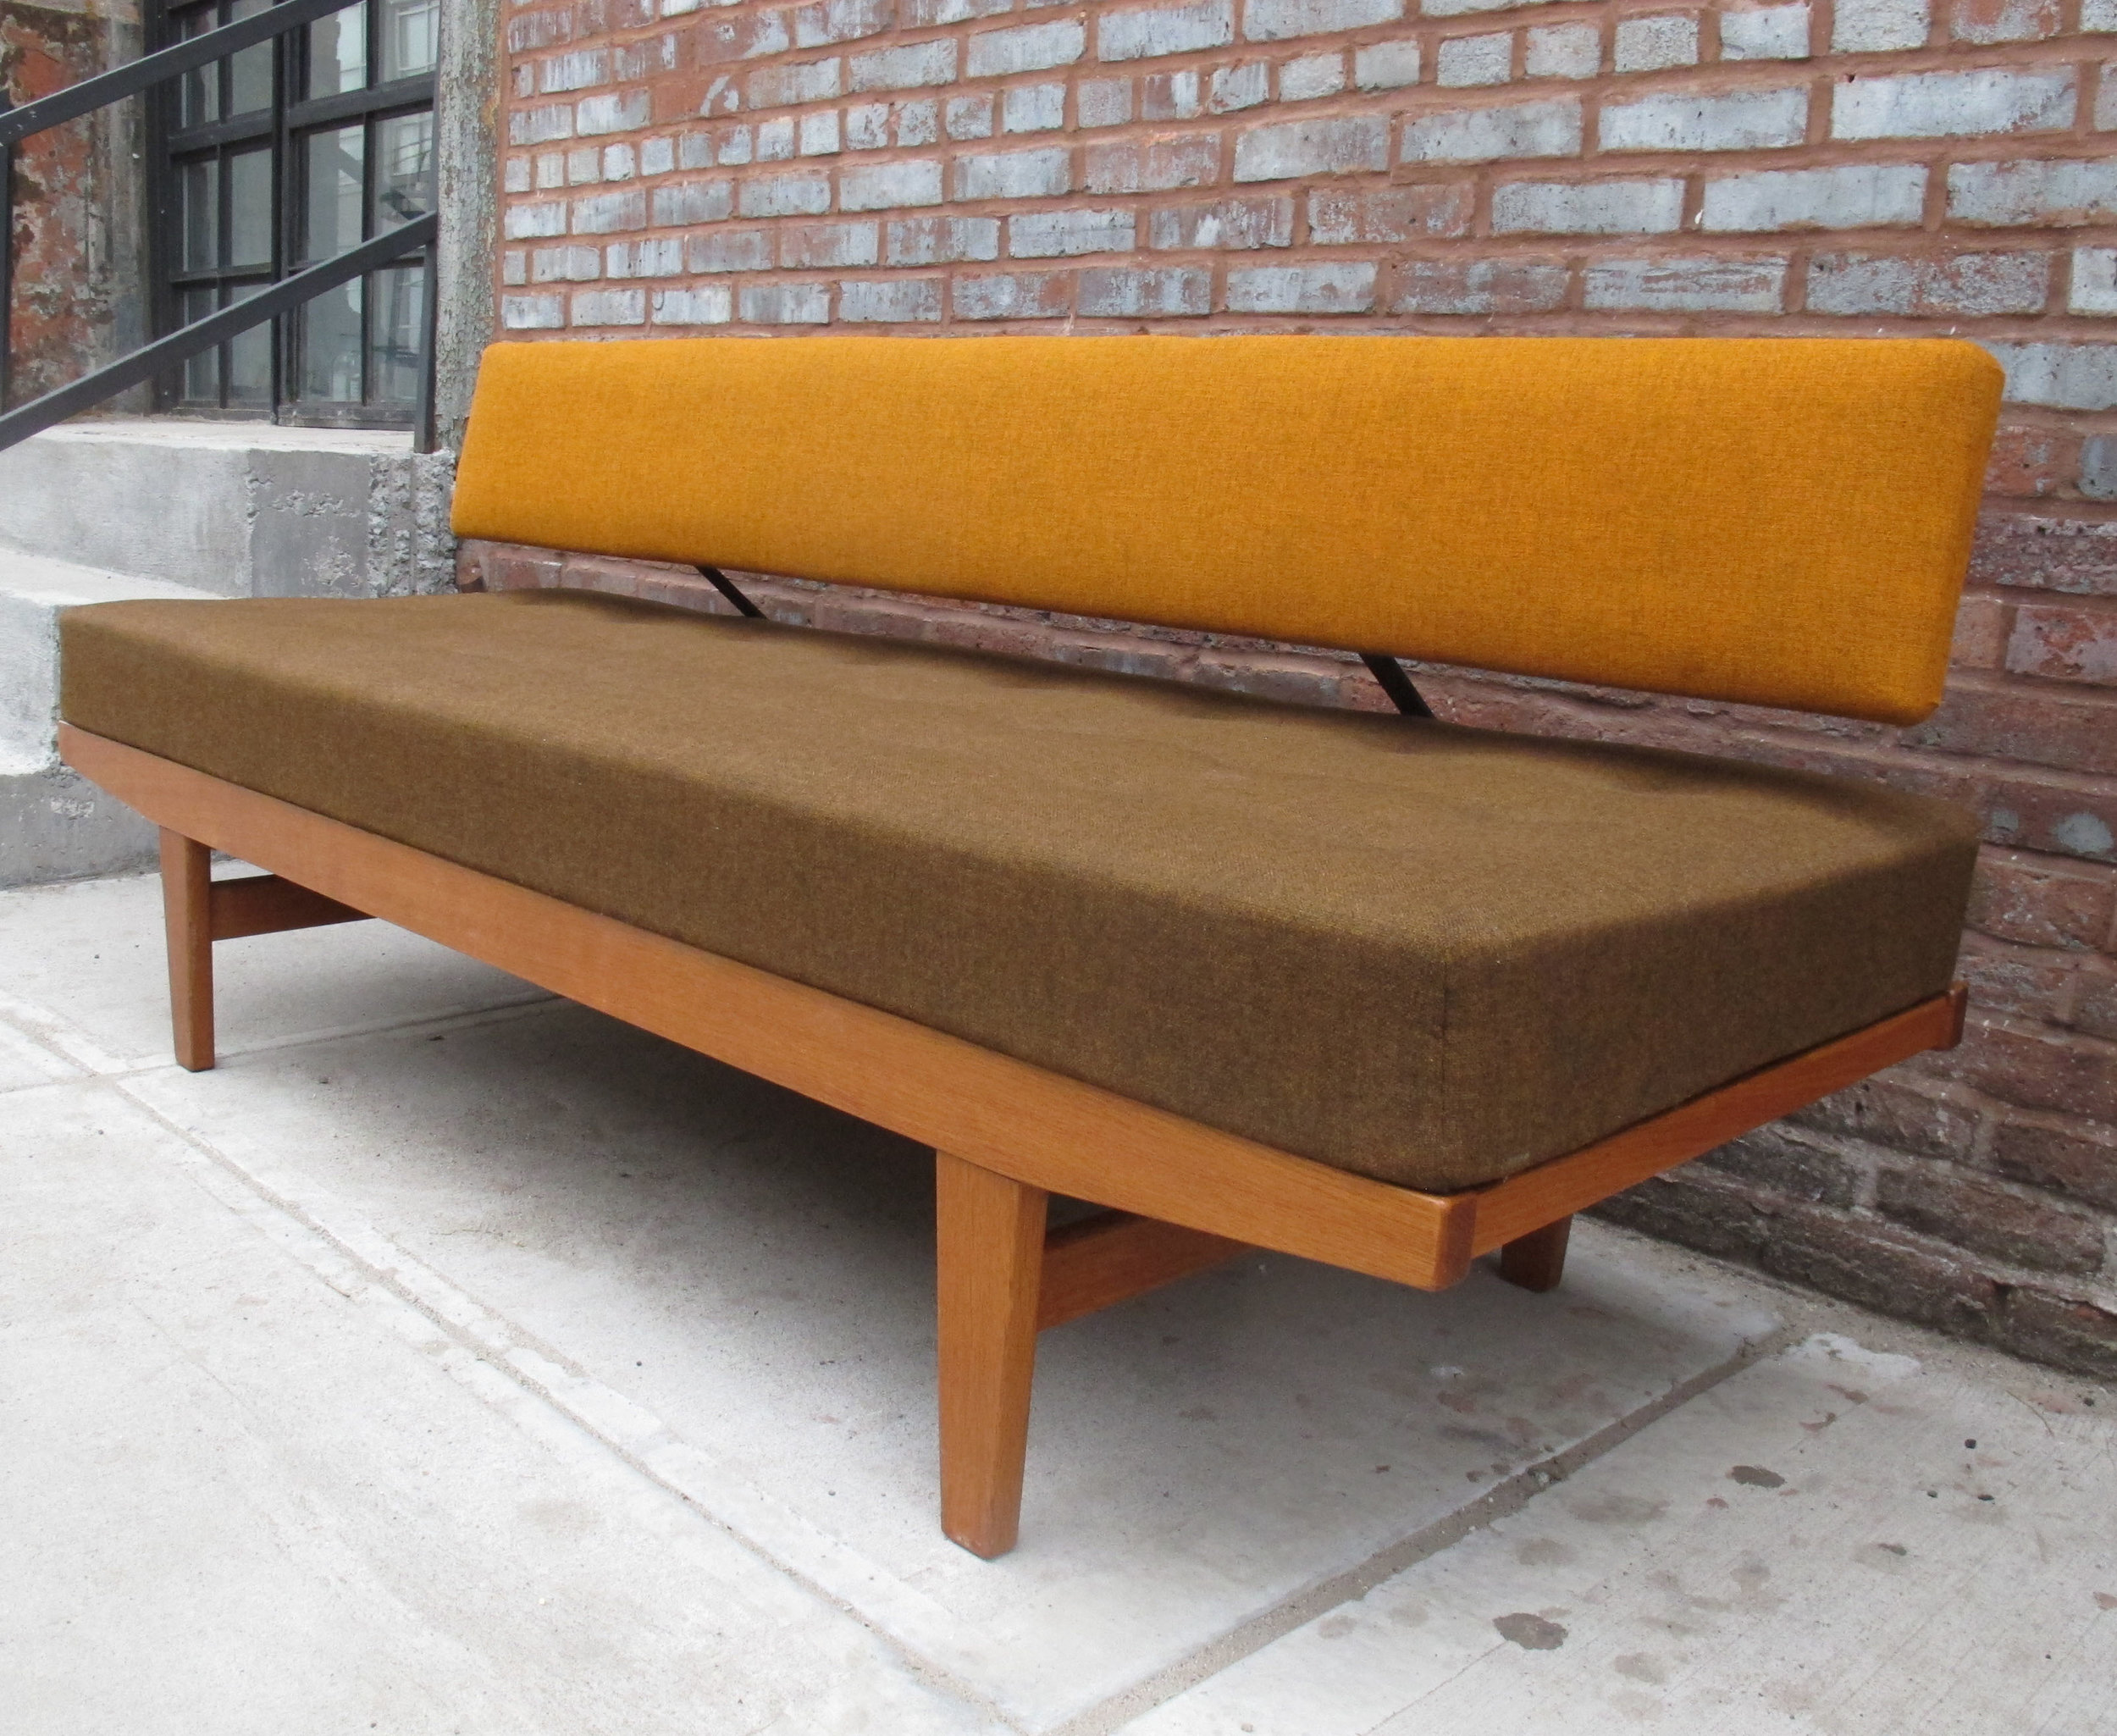 DANISH MODERN POUL VOLTHER TEAK DAYBED BY FDB MOBLER